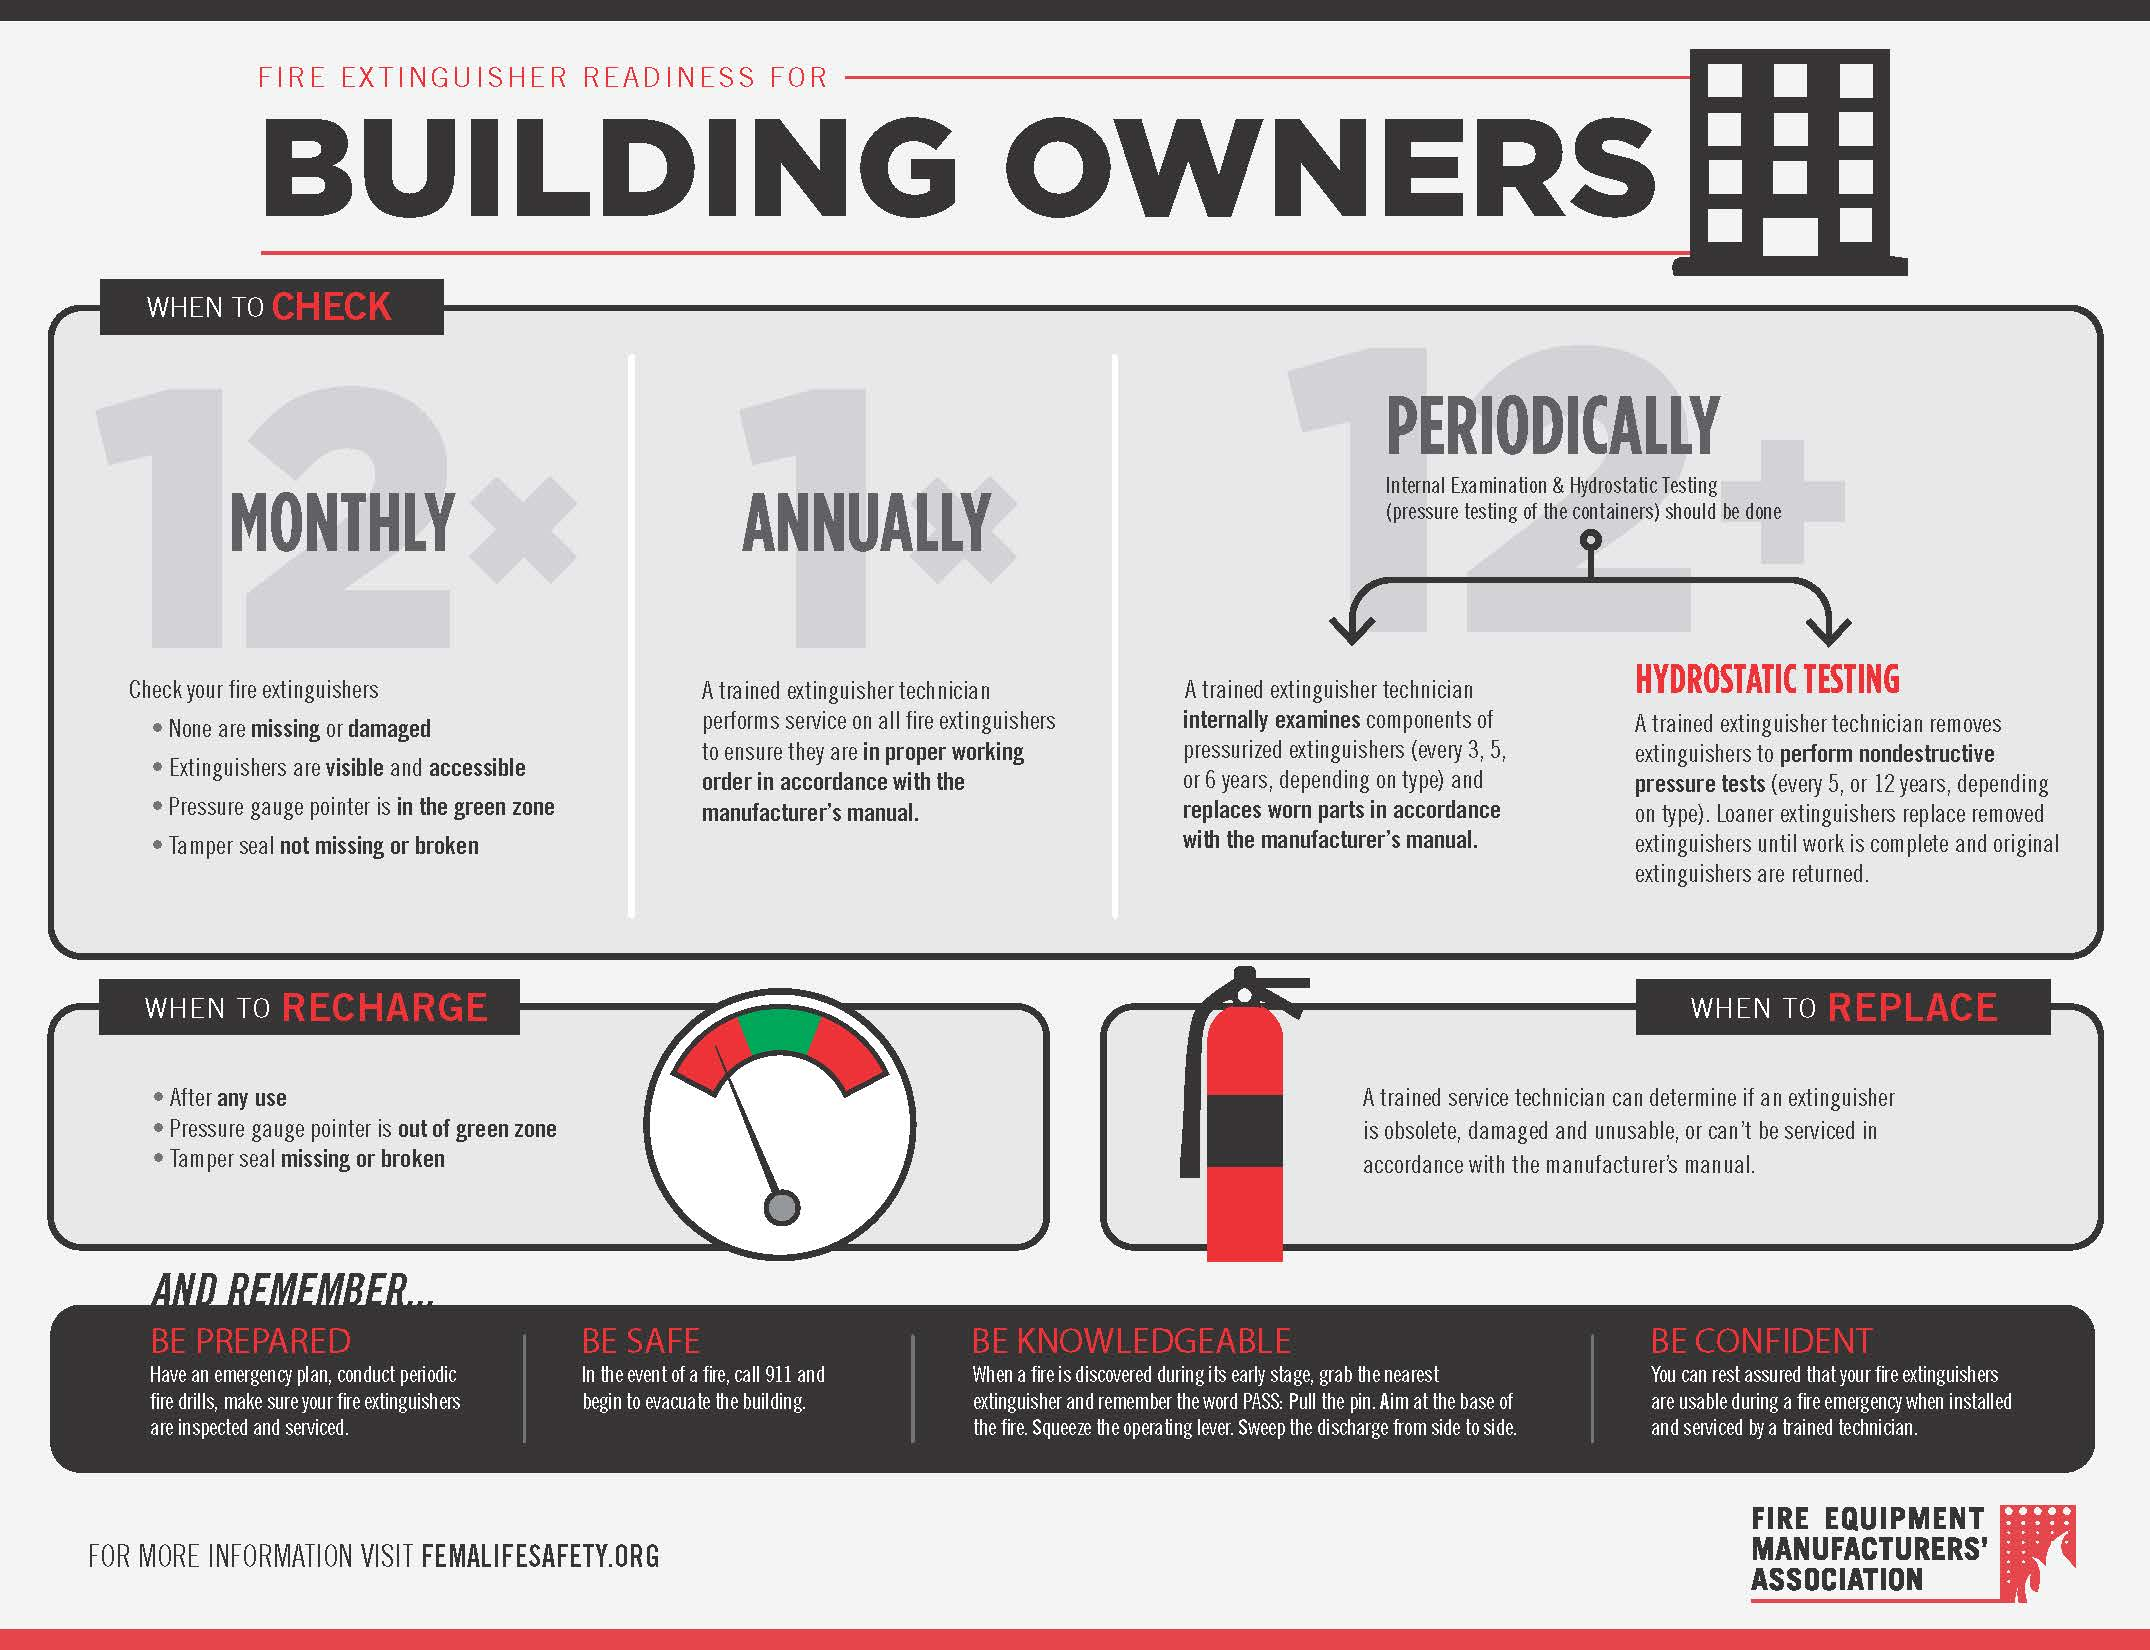 Fire Extinguisher Readiness for Building Owners (PDF)